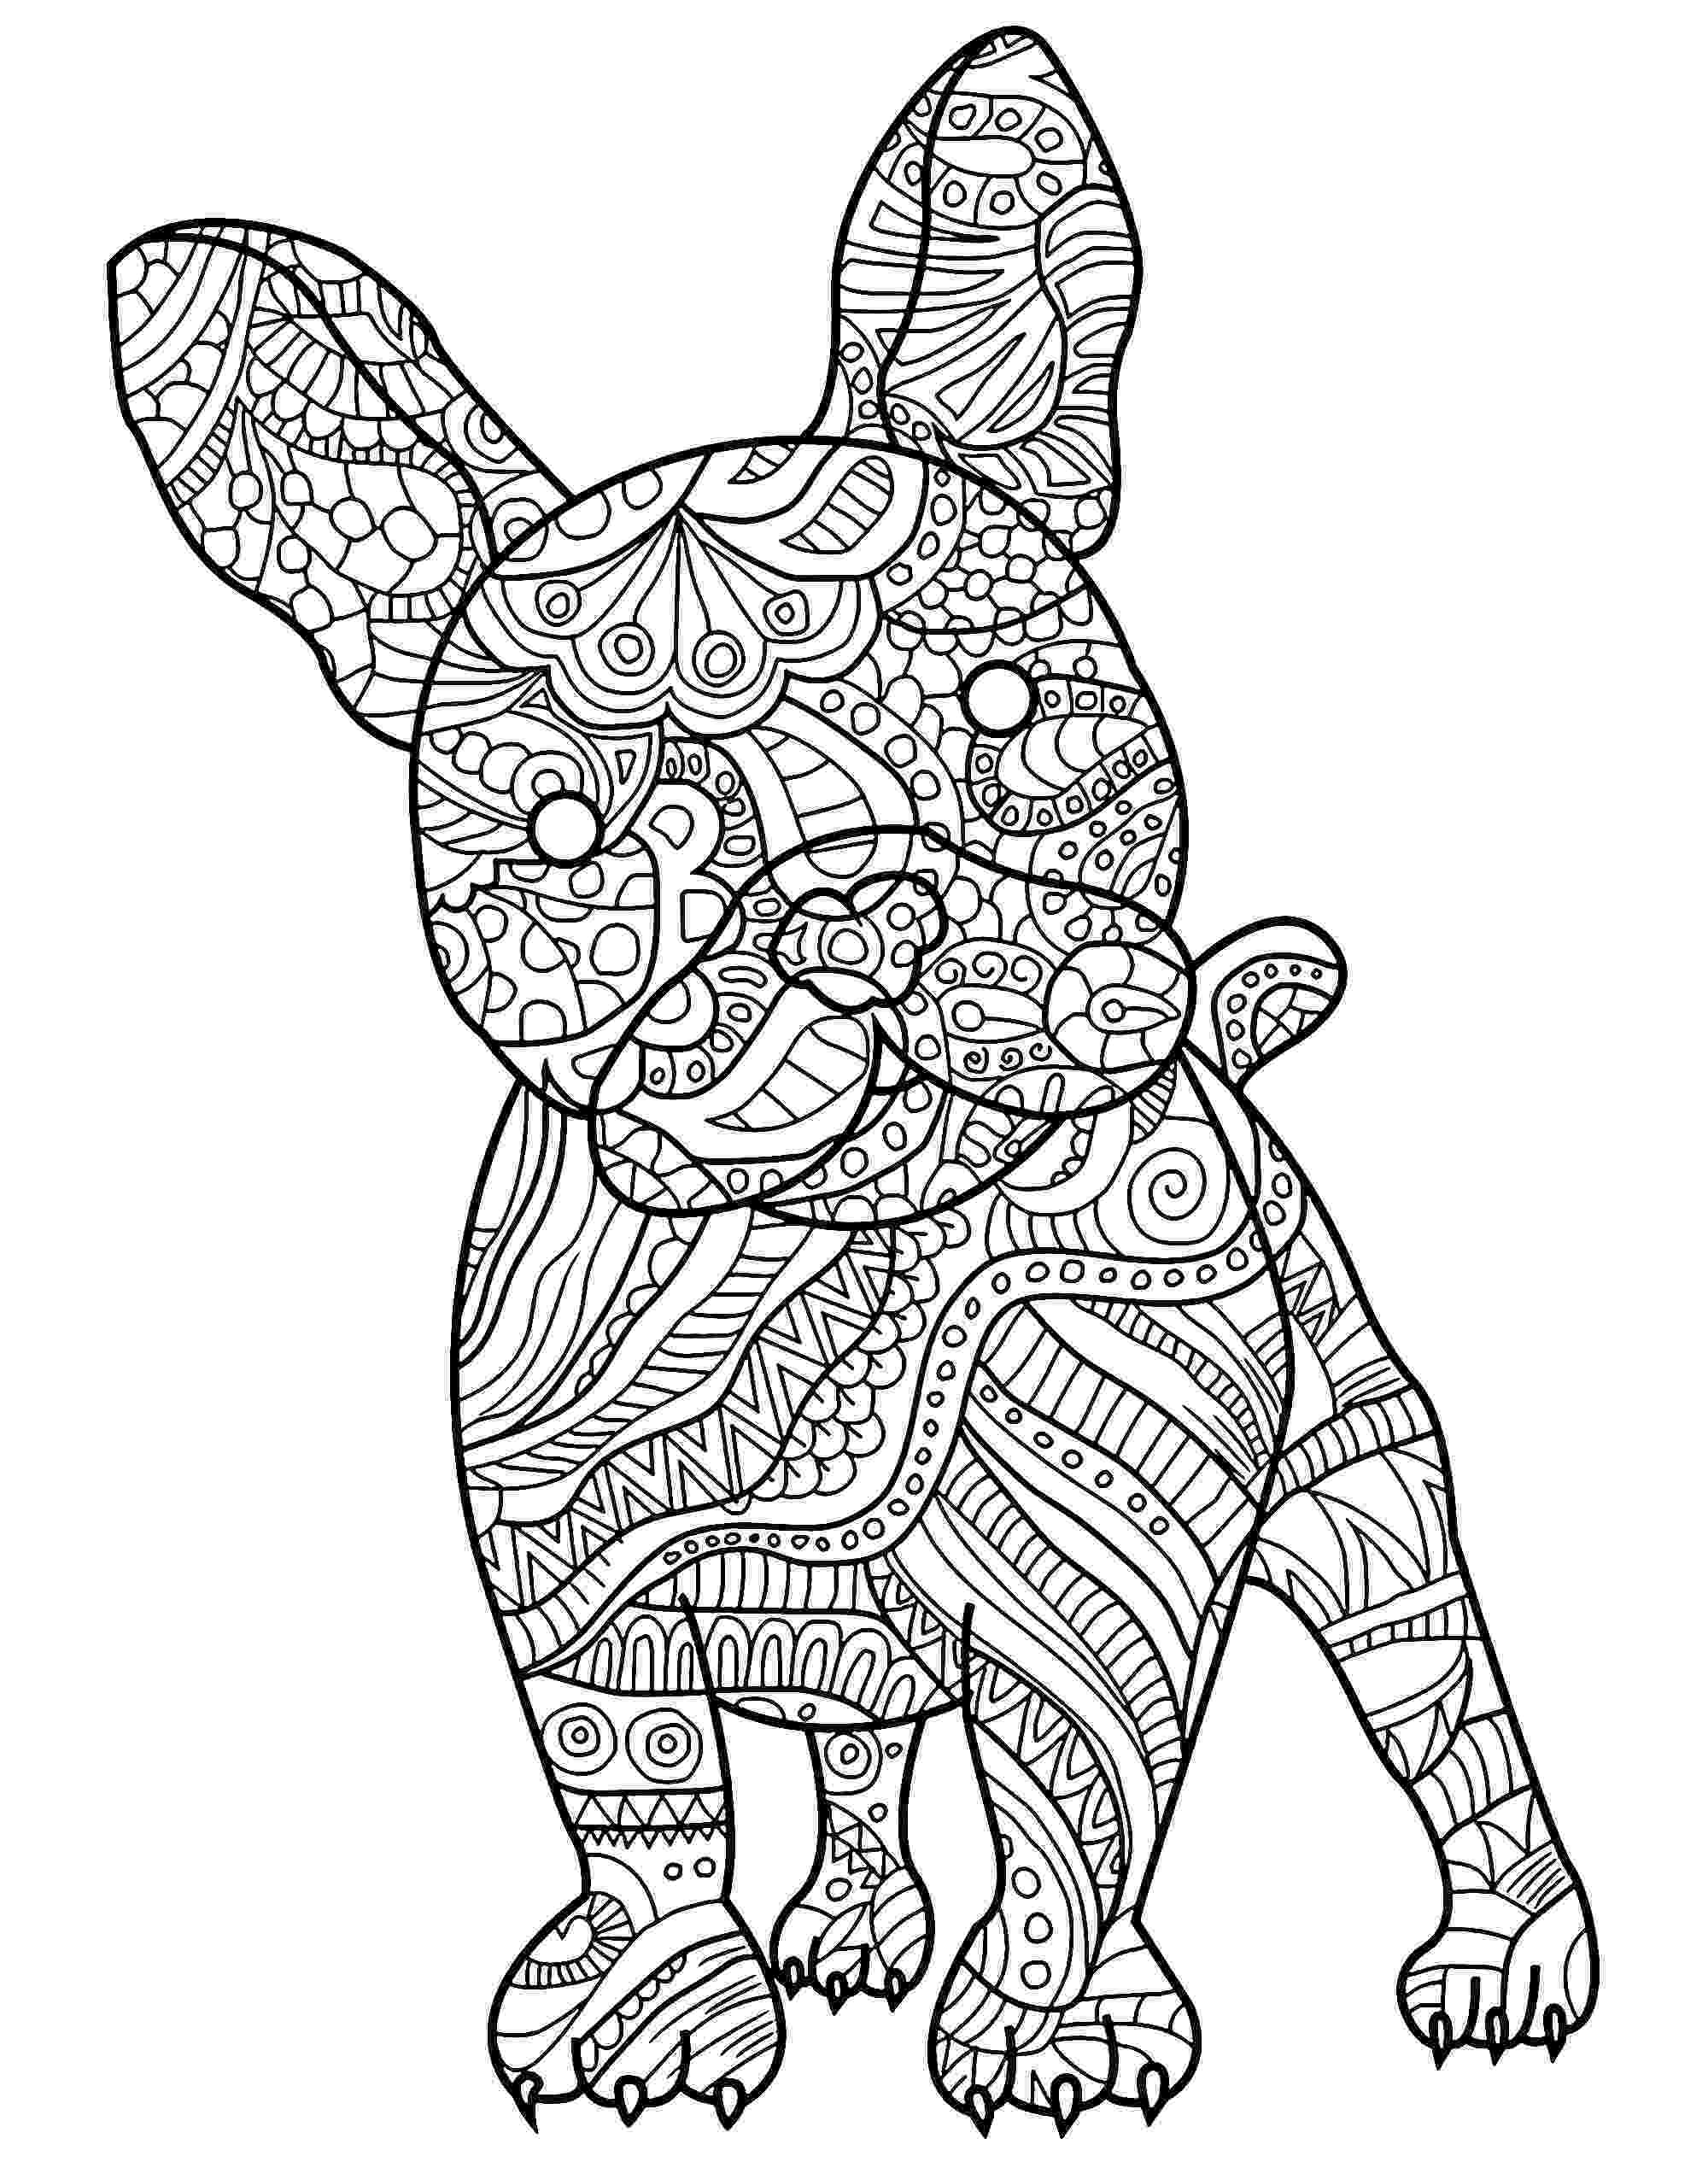 free dog coloring pages dog free to color for children cute female dog dogs dog coloring free pages